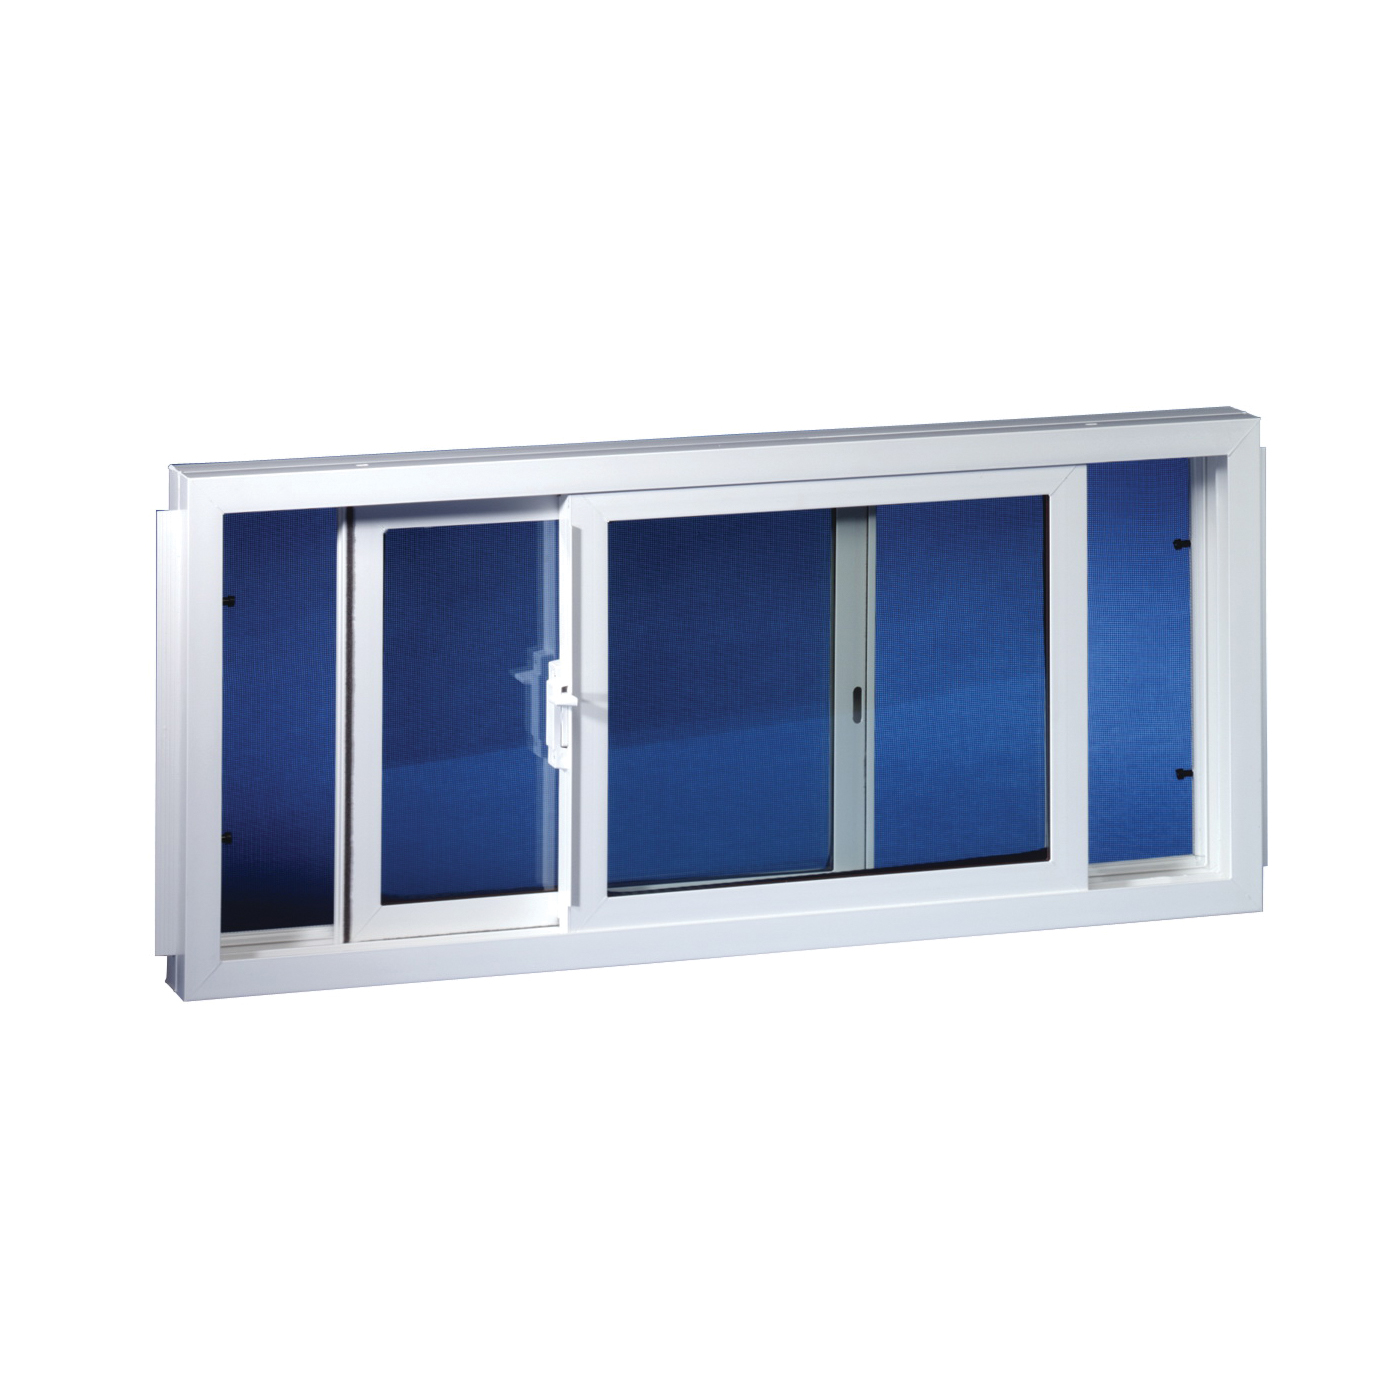 Picture of Duo-Corp 3218SLID Basement Window, Insulated Glass Glass/Screen, Vinyl Frame